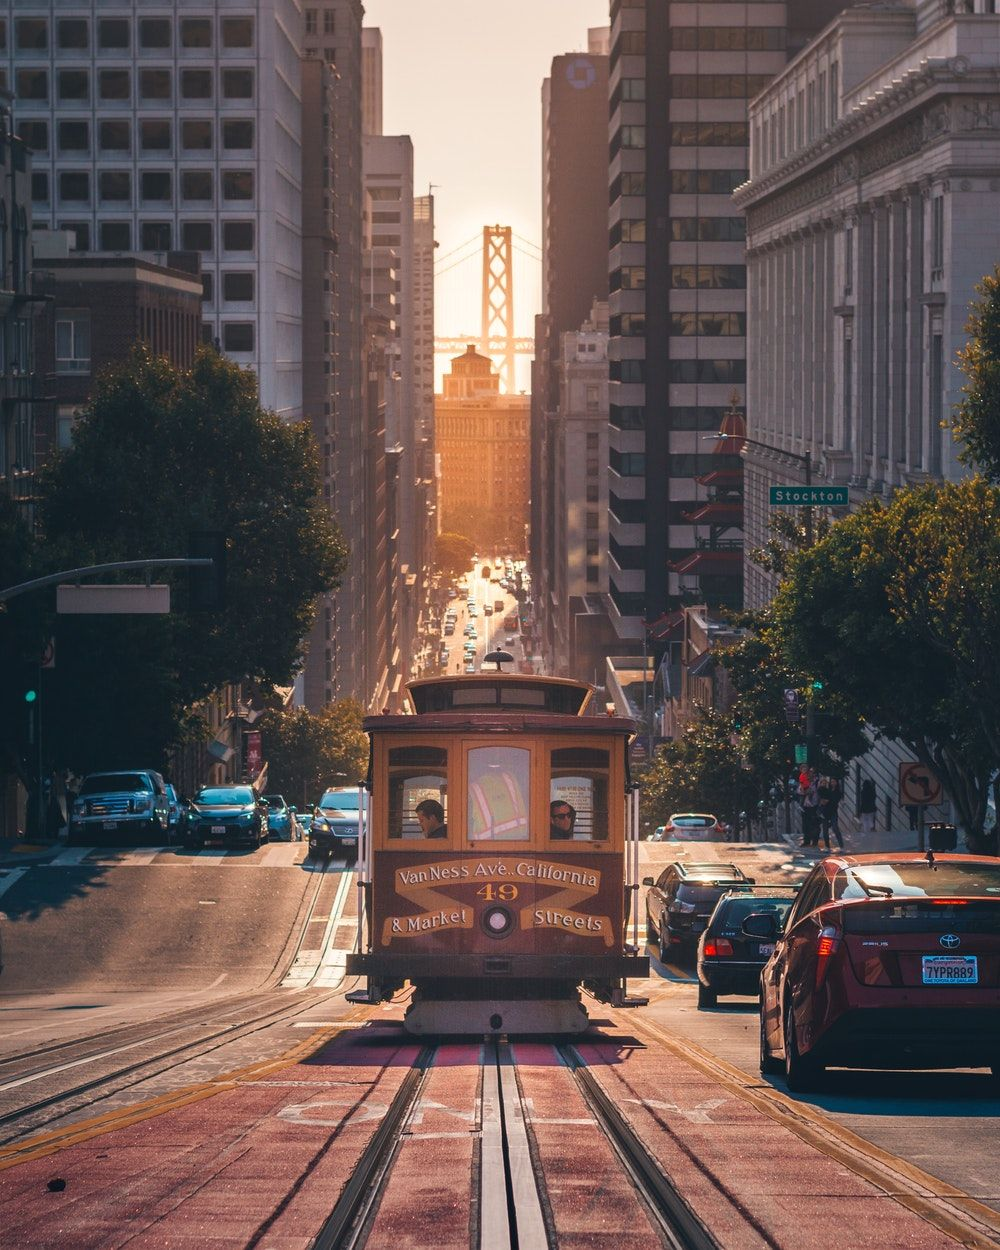 1000x1250 100+ San Francisco Pictures [Stunning] | Download Free Images on ...